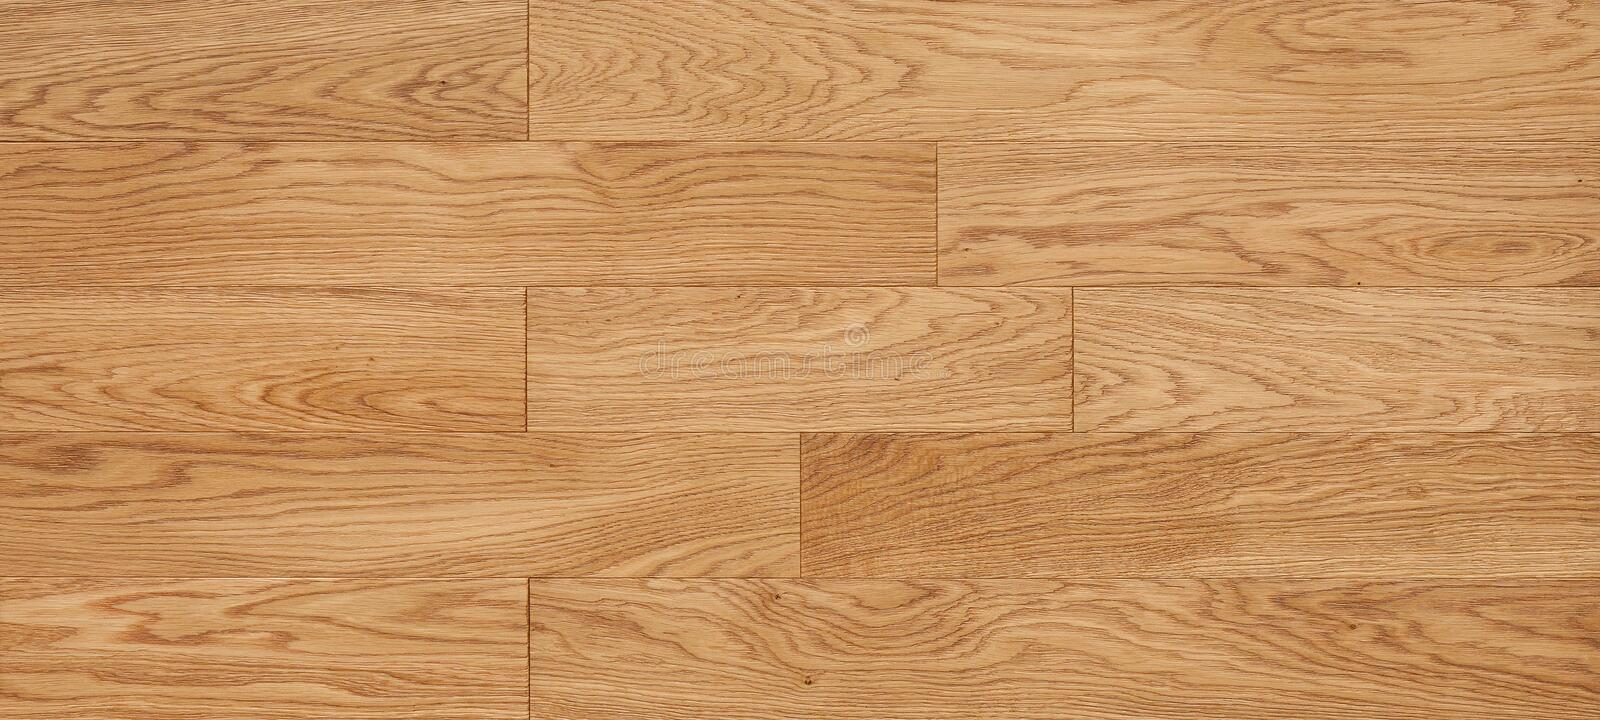 texture en bois de plancher parquet de ch ne image stock image du vieux construction 46656773. Black Bedroom Furniture Sets. Home Design Ideas